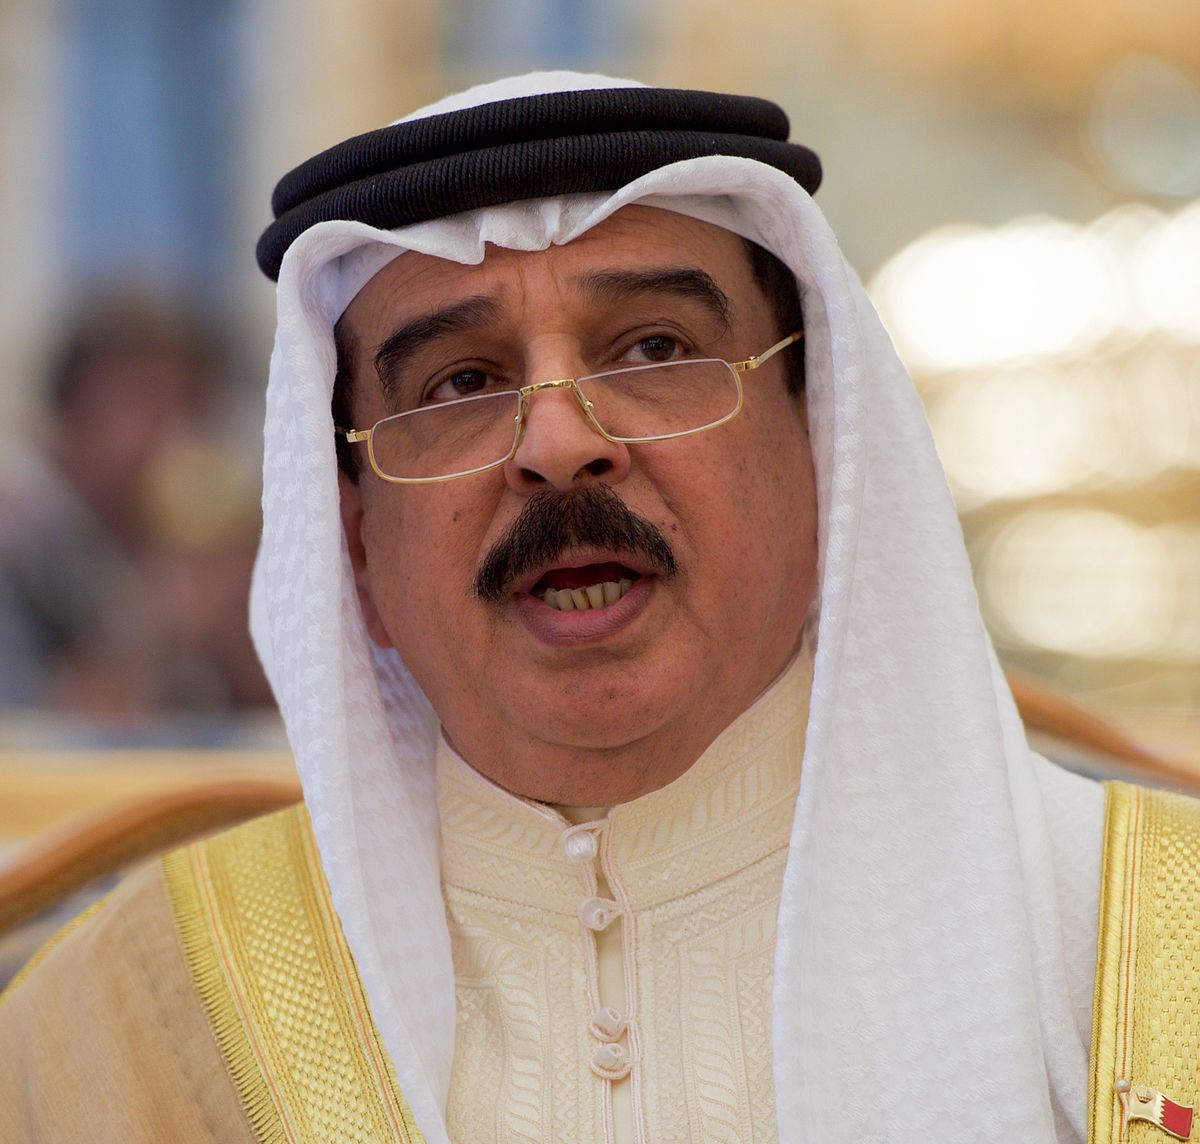 King_Hamad_bin_Isa_Al_Khalifa_of_Bahrain_(cropped)